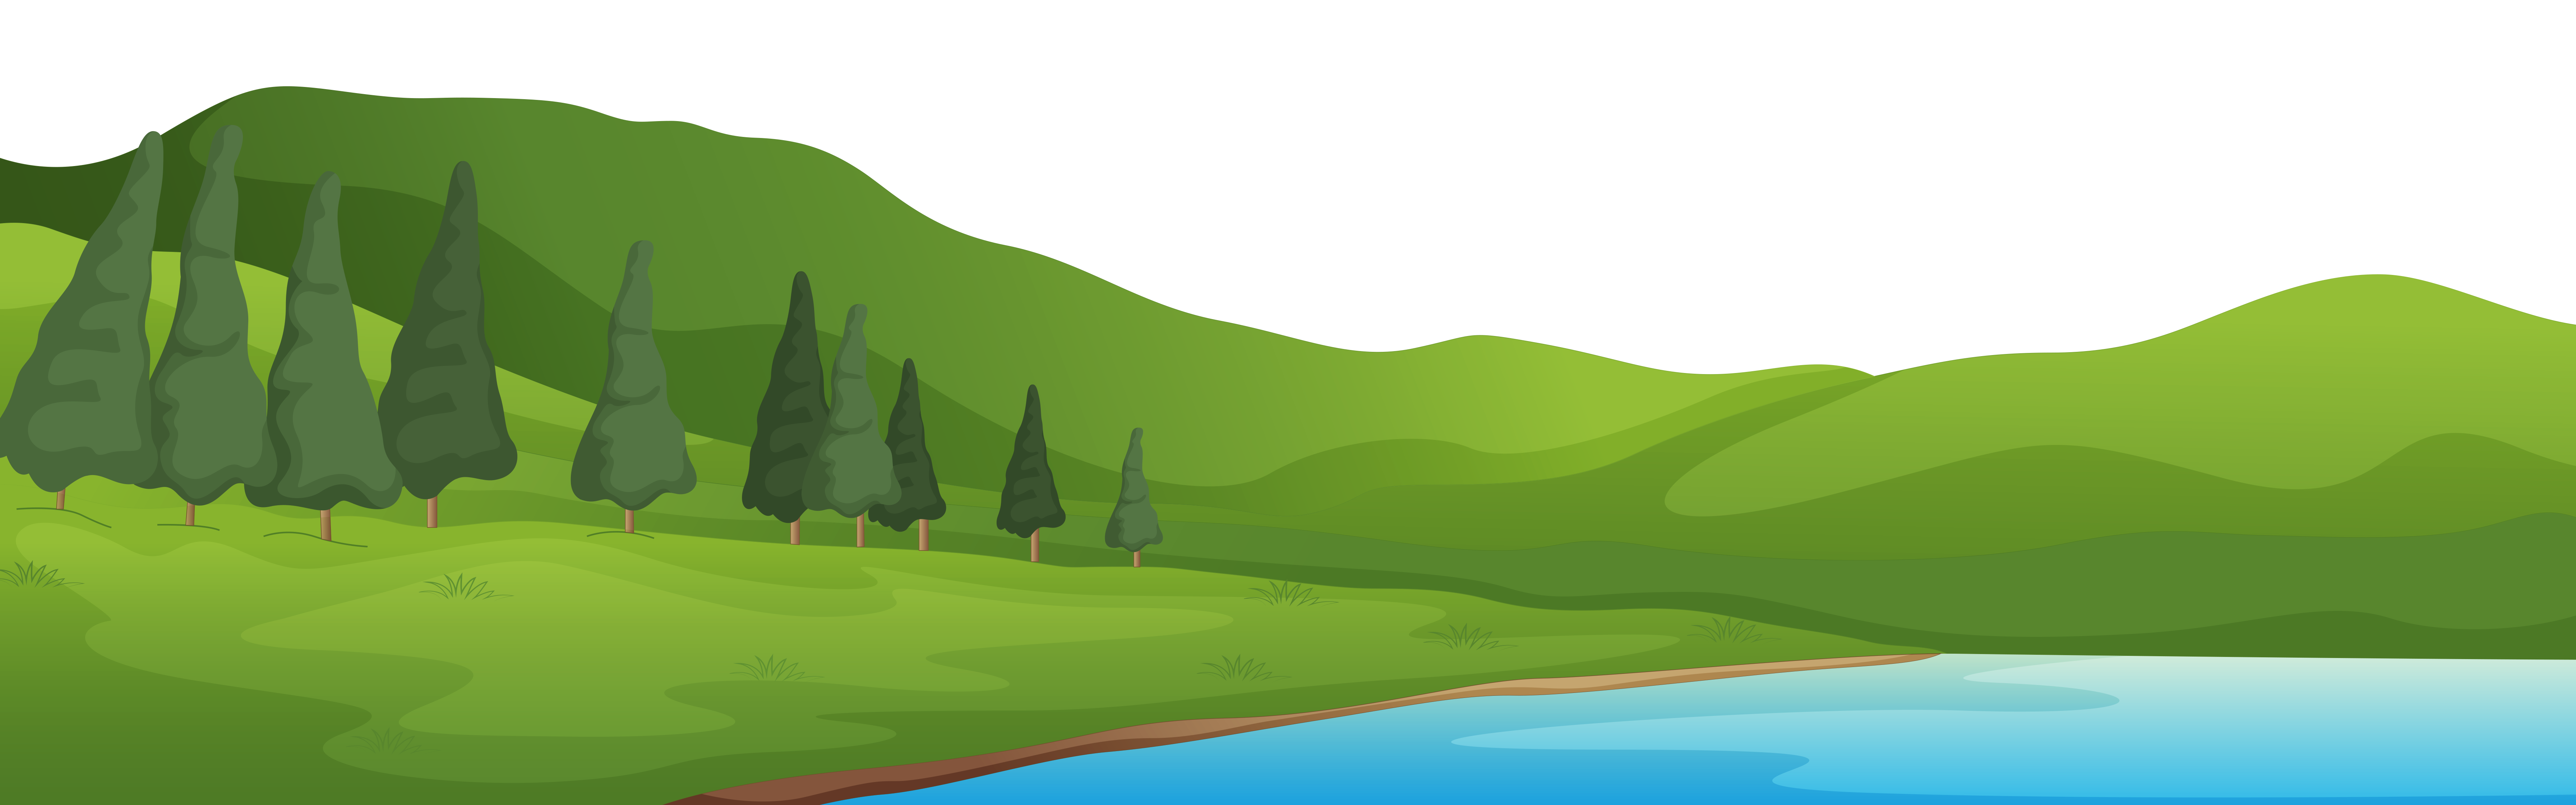 mountains clipart png